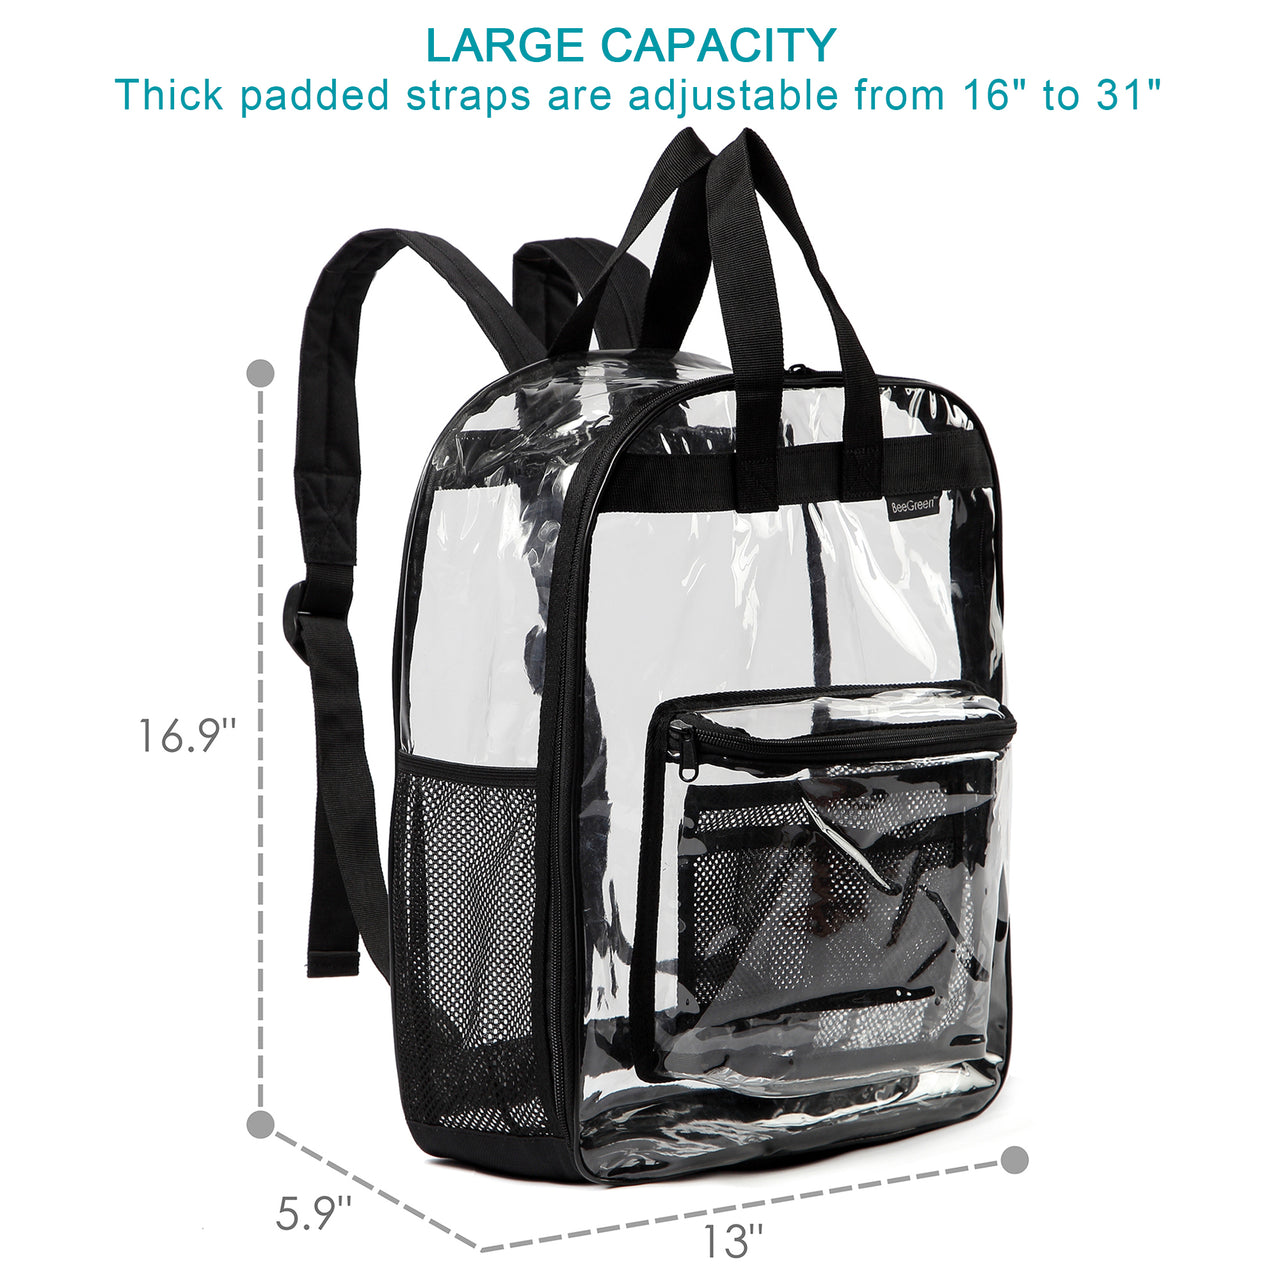 Clear Backpack See Through Transparent Backpack w Front Zippered Pocket & 2 Mesh Side pocket Large Size School Bag Heavy Duty For College Work Security Travel & Sports